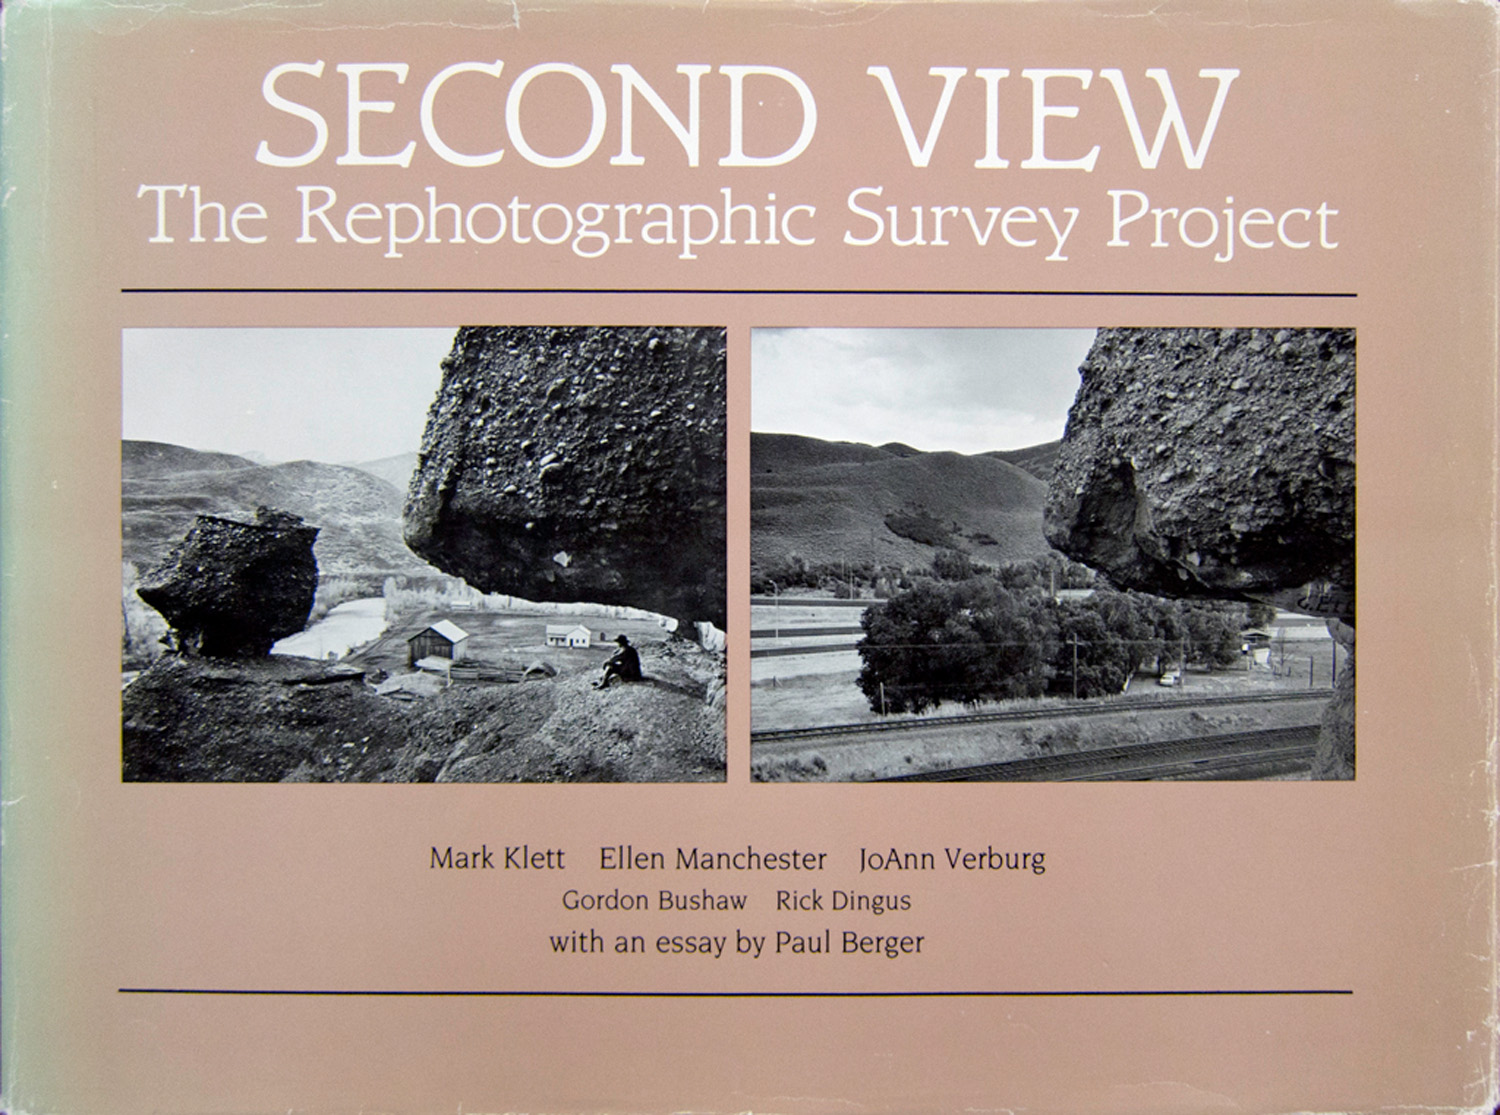 Second View: The Rephoto- graphic Survey Project, with Ellen Manchester and JoAnn Verburg, University of New Mexico Press 1984